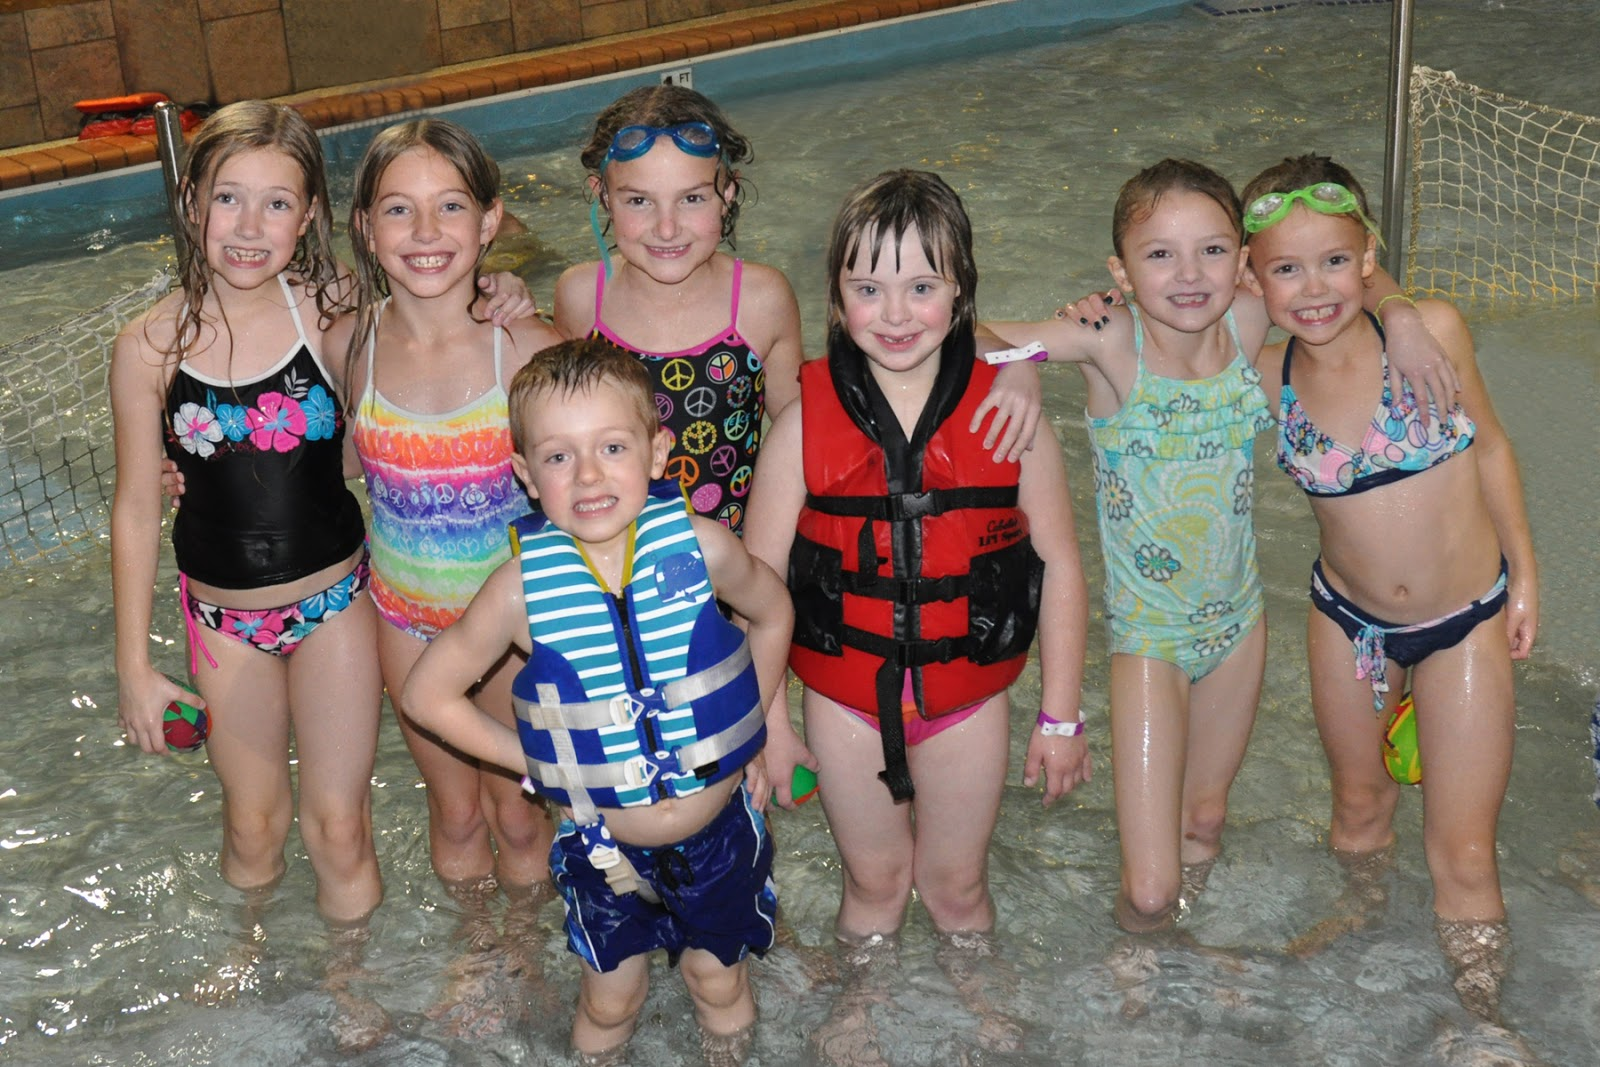 8th grade pool party party included some hotel pool images frompo